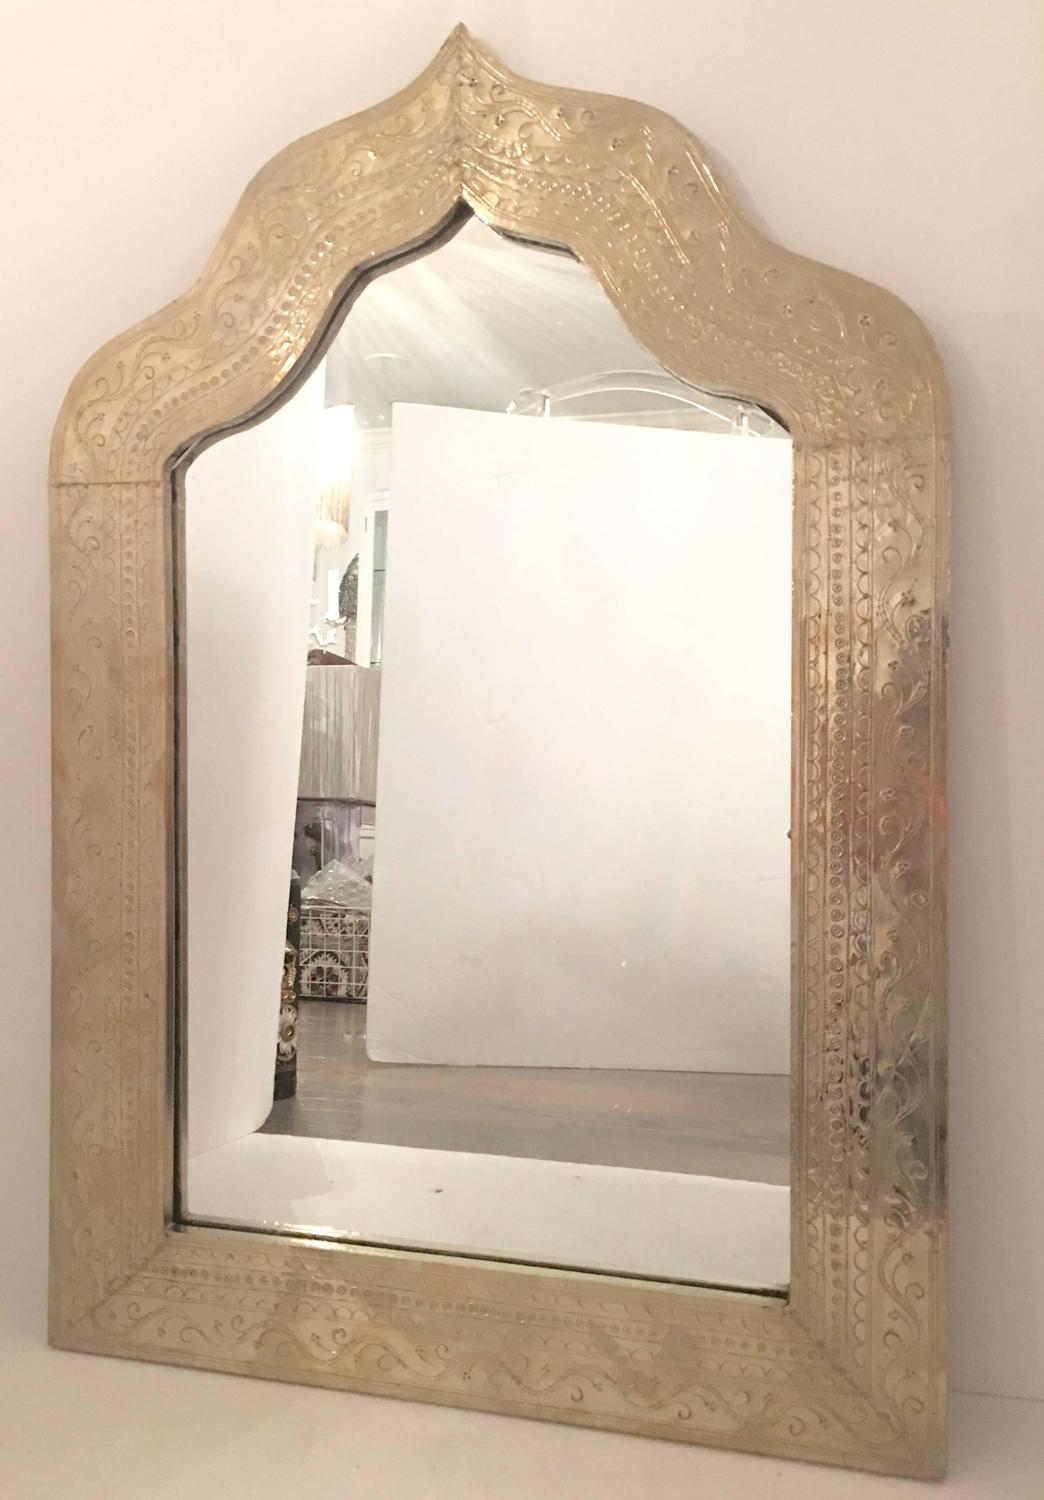 Pair of silver plate etched arabesque framed mirror 39 s for for Silver framed mirrors on sale